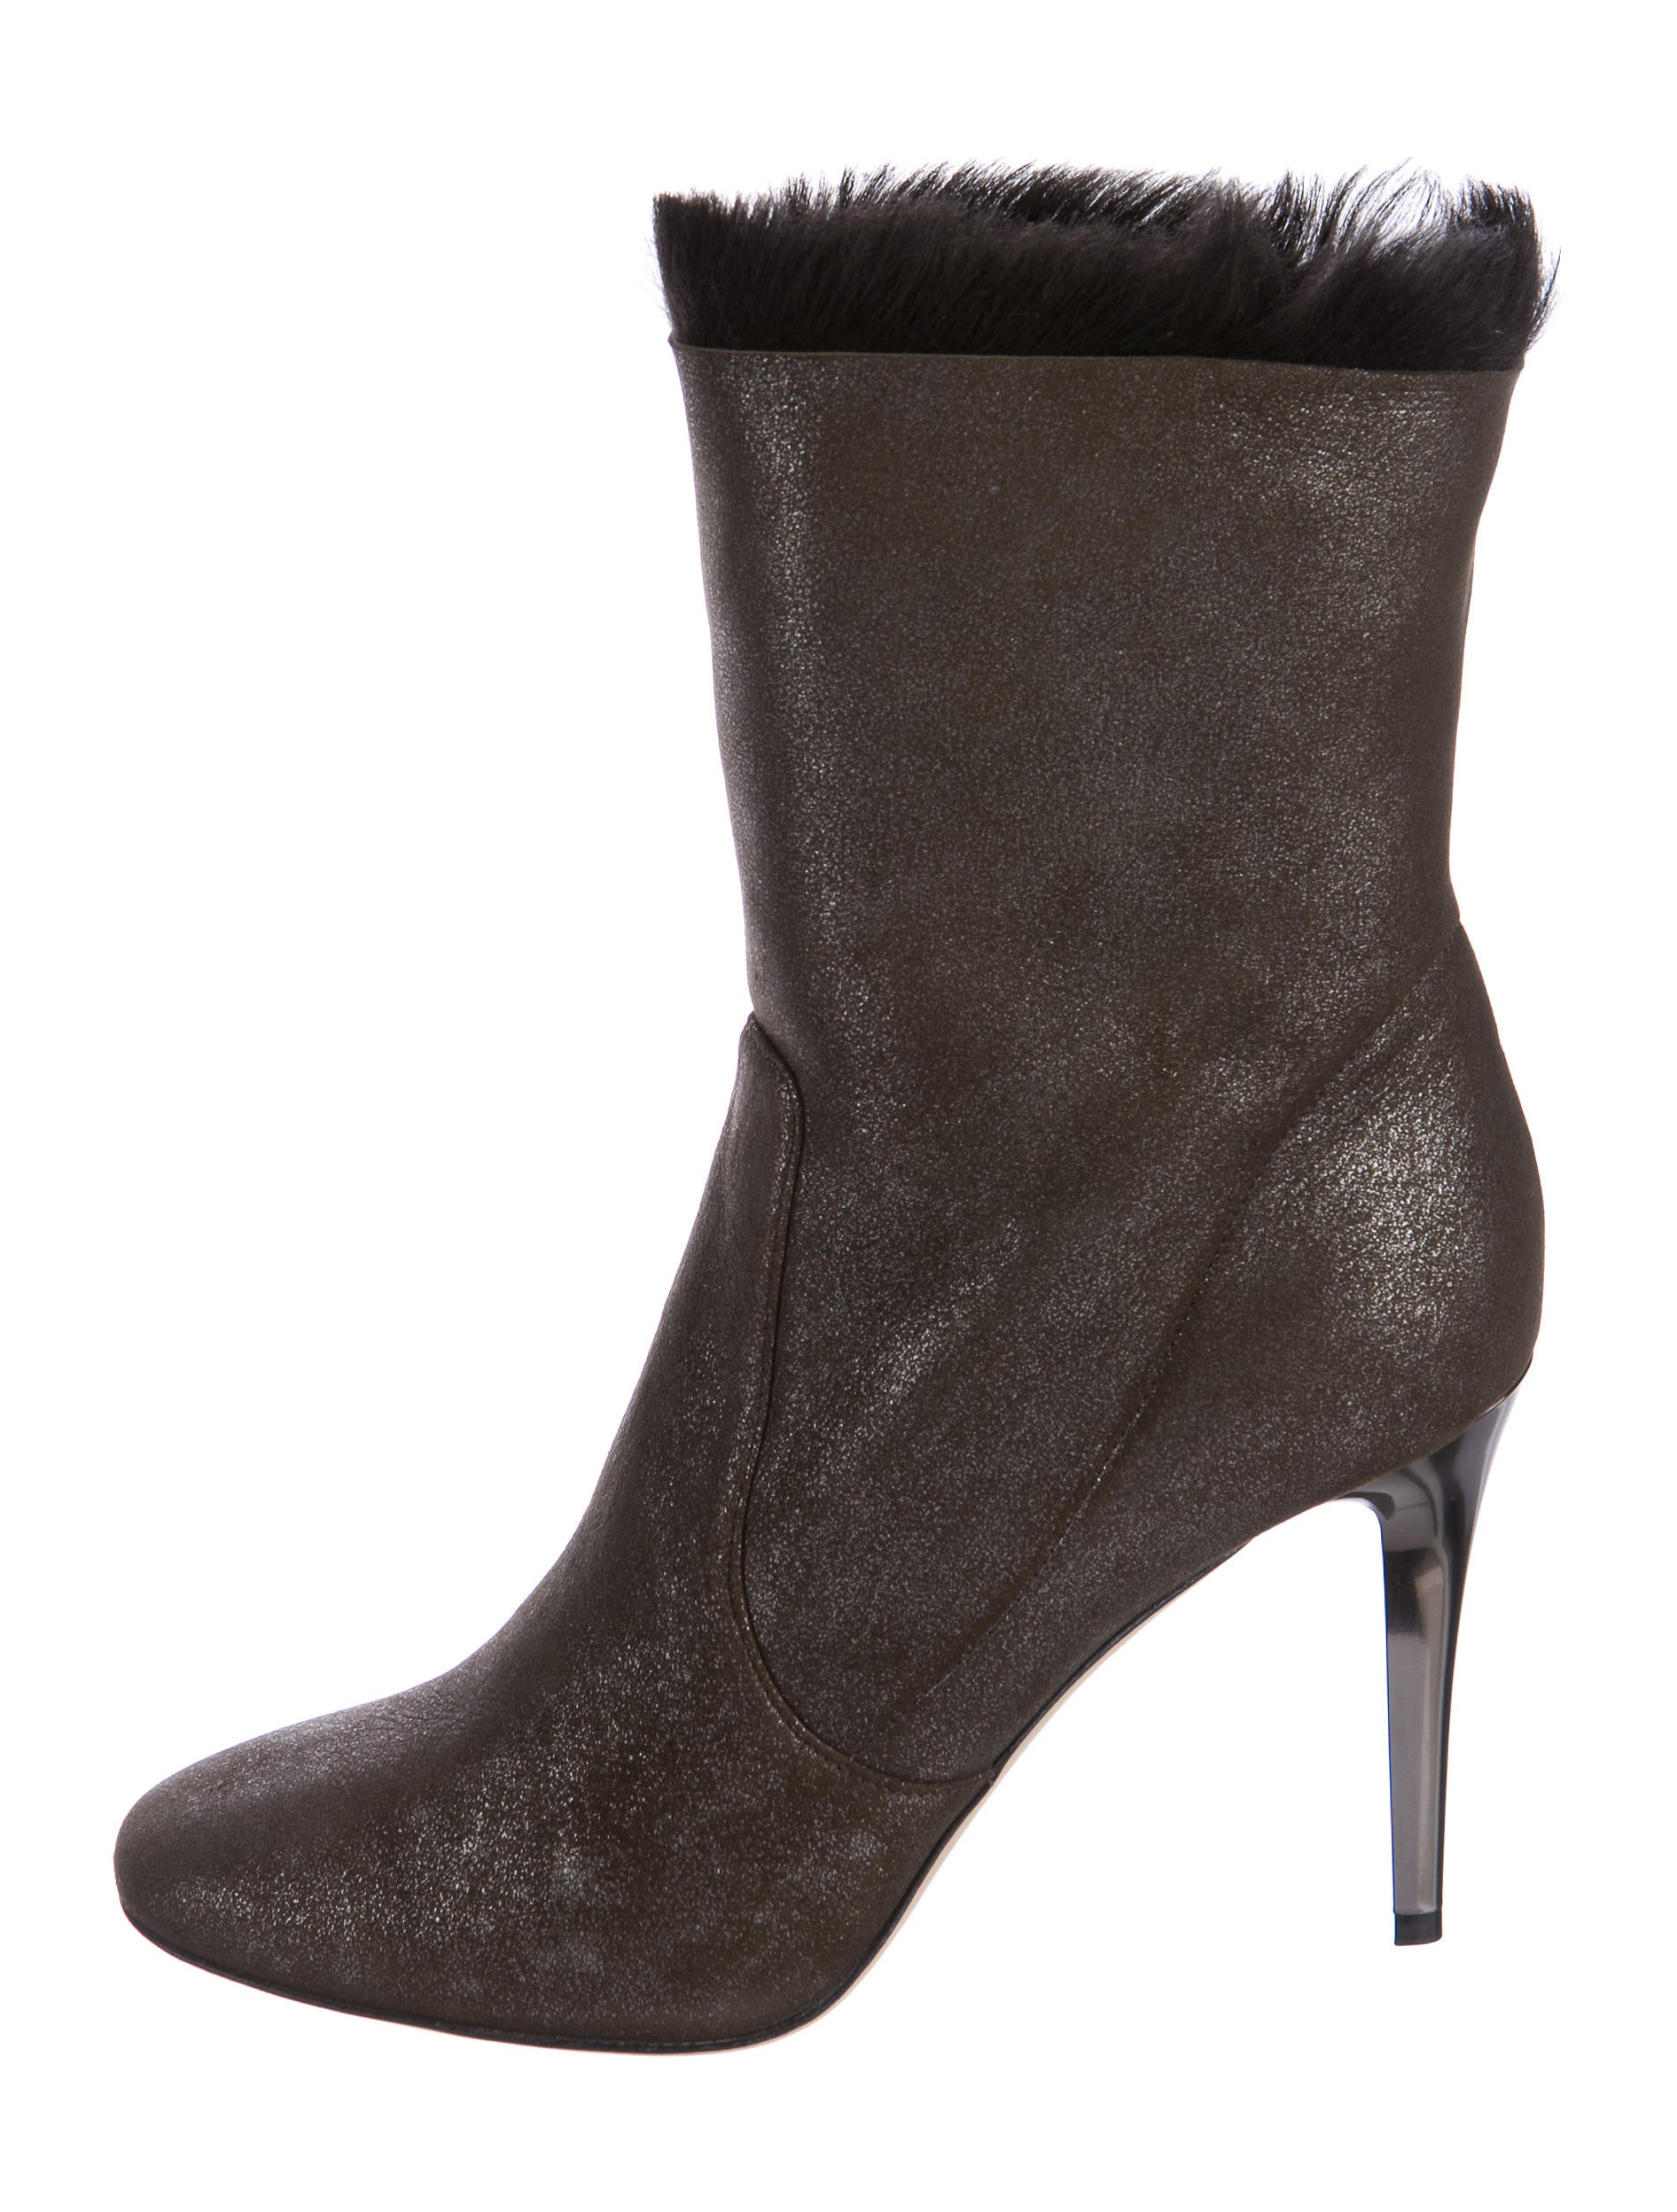 Jimmy Choo Metallic Shearling Ankle Boots outlet wiki sTylB1UZ